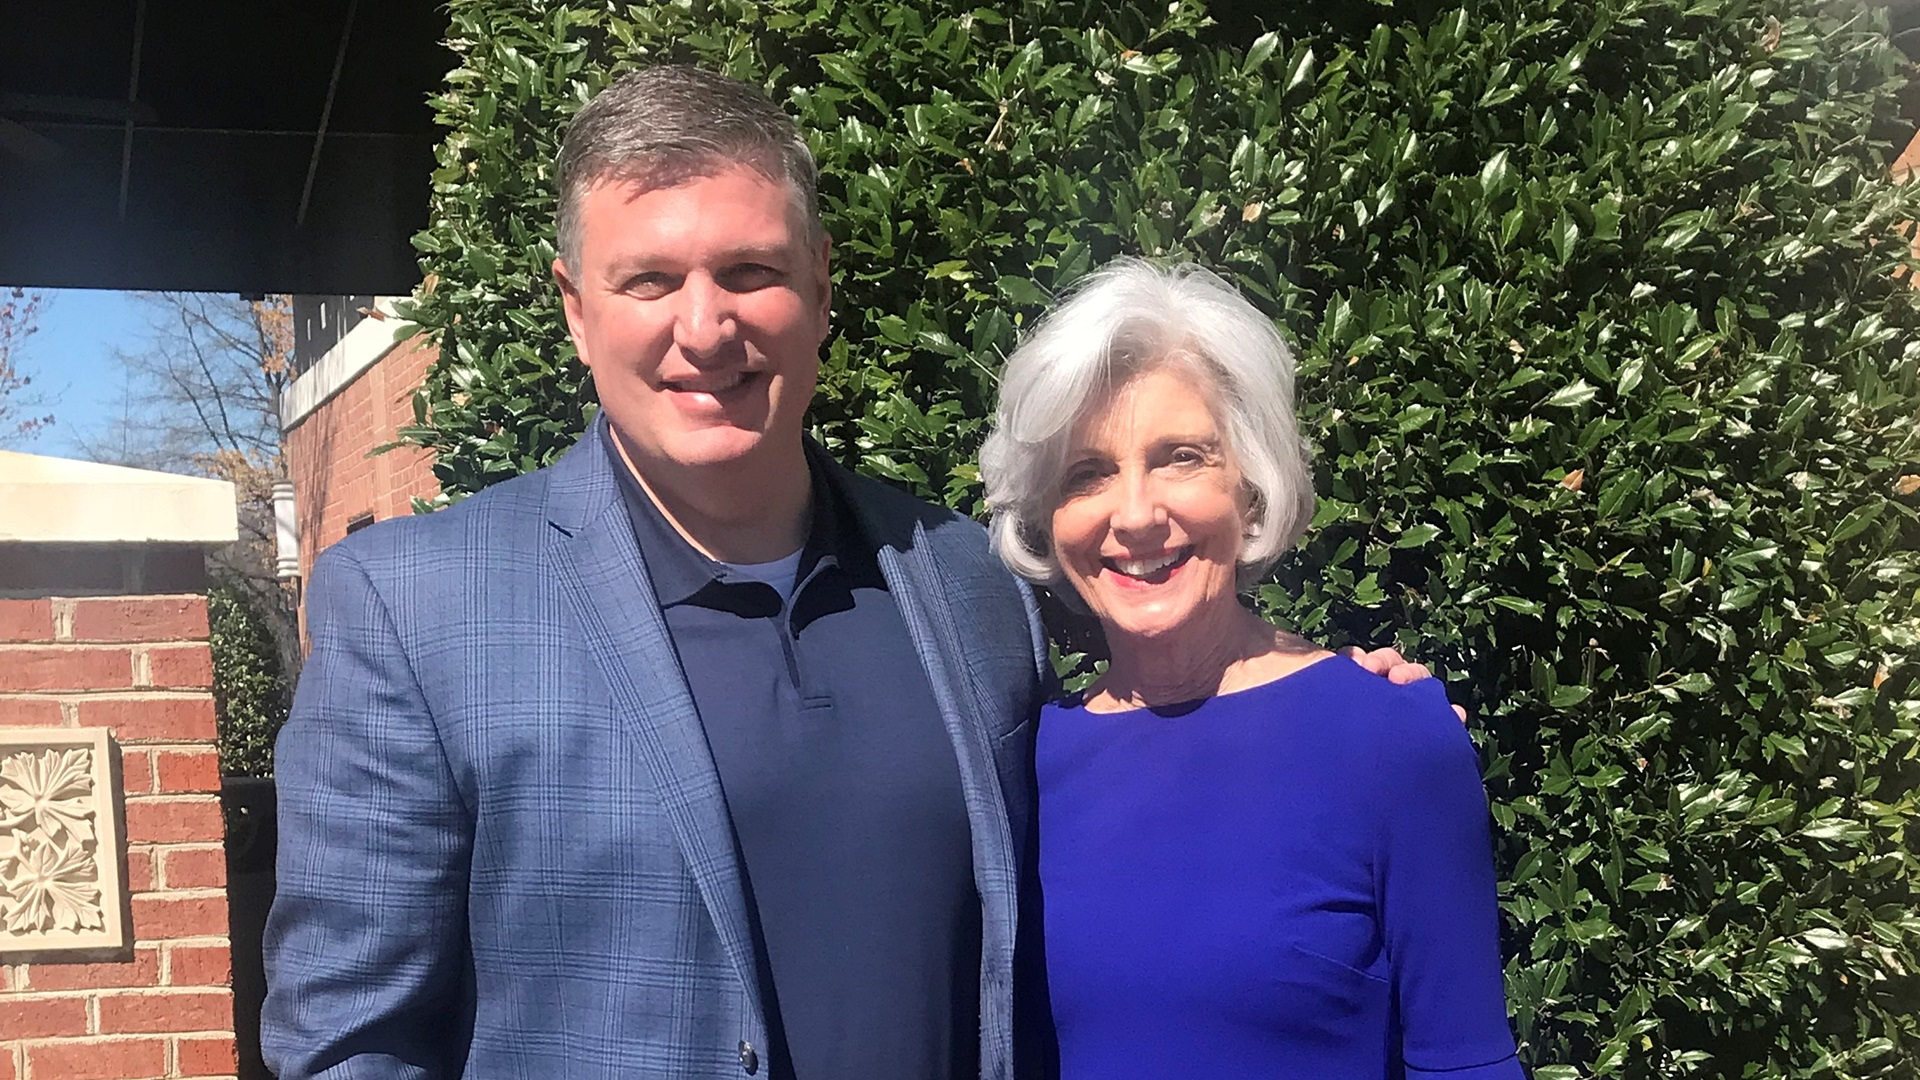 Michael Mullowney, VP of Carolinas HealthCare System neurosciences with his mother, Mary, who suffers from Trigeminal Neuralgia